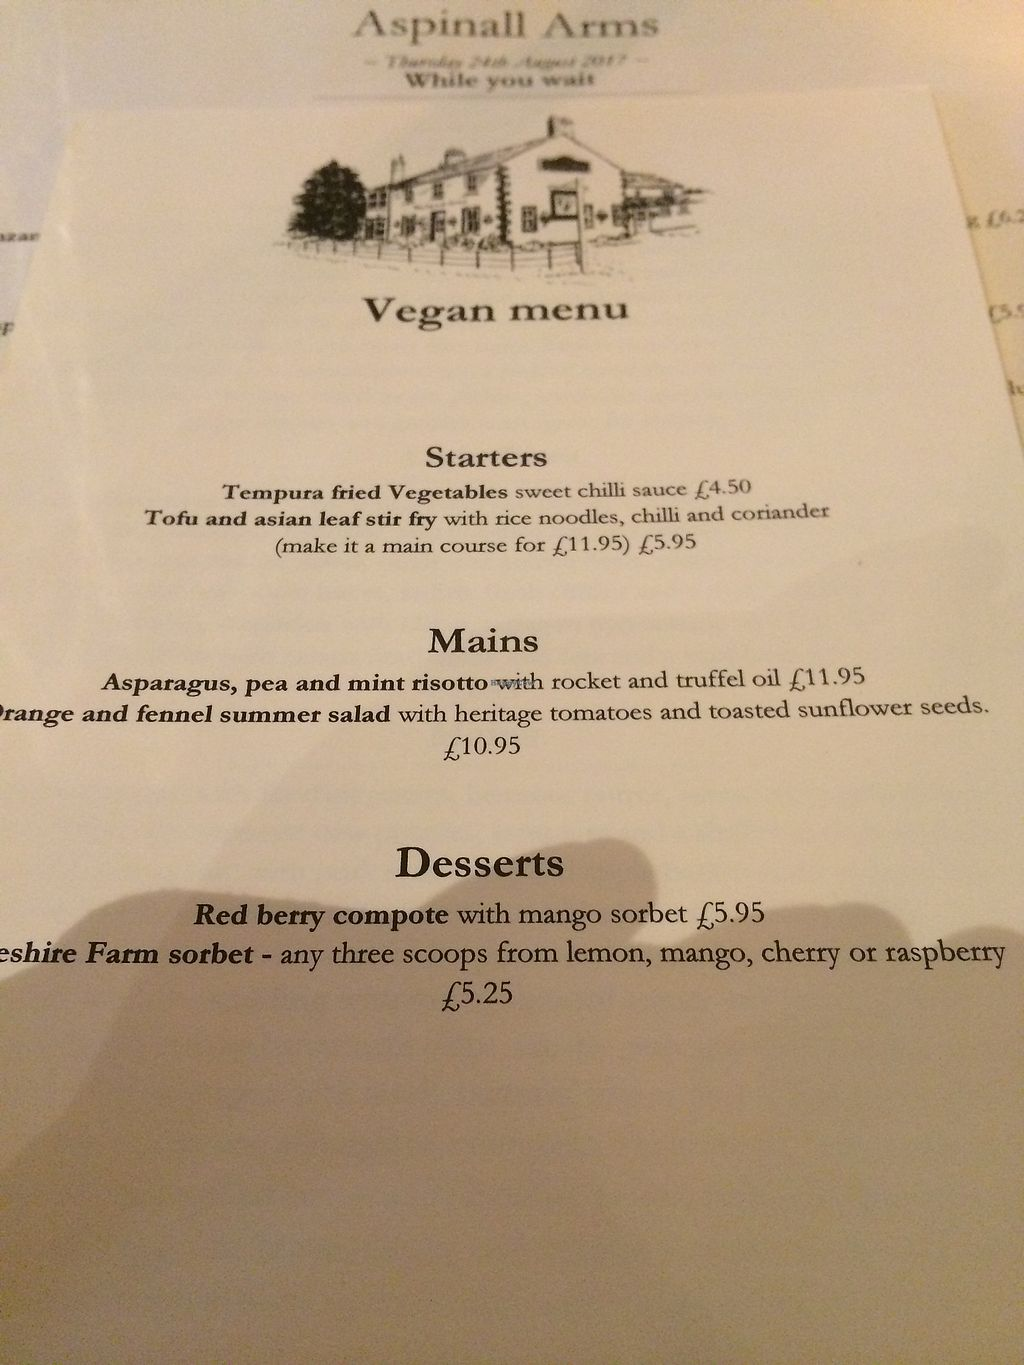 """Photo of The Aspinall Arms  by <a href=""""/members/profile/HollyRoseRobinson"""">HollyRoseRobinson</a> <br/>august 17 menu <br/> August 24, 2017  - <a href='/contact/abuse/image/75412/296870'>Report</a>"""